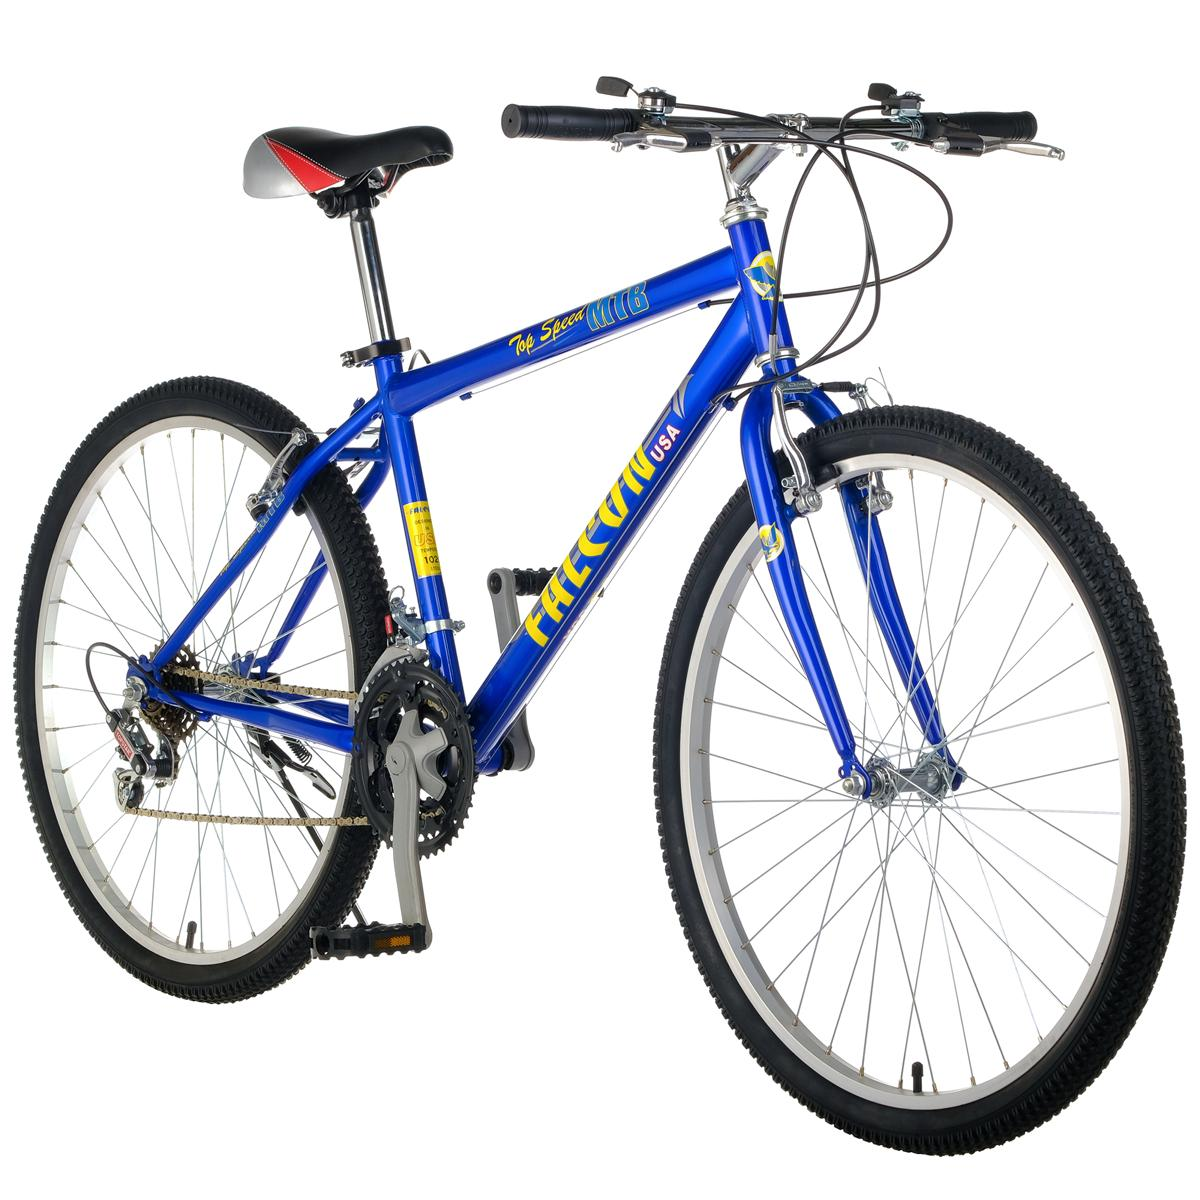 dc8f89ee034 Mountain Bikes for sale - Mountain Bicycle Online Deals & Prices in ...